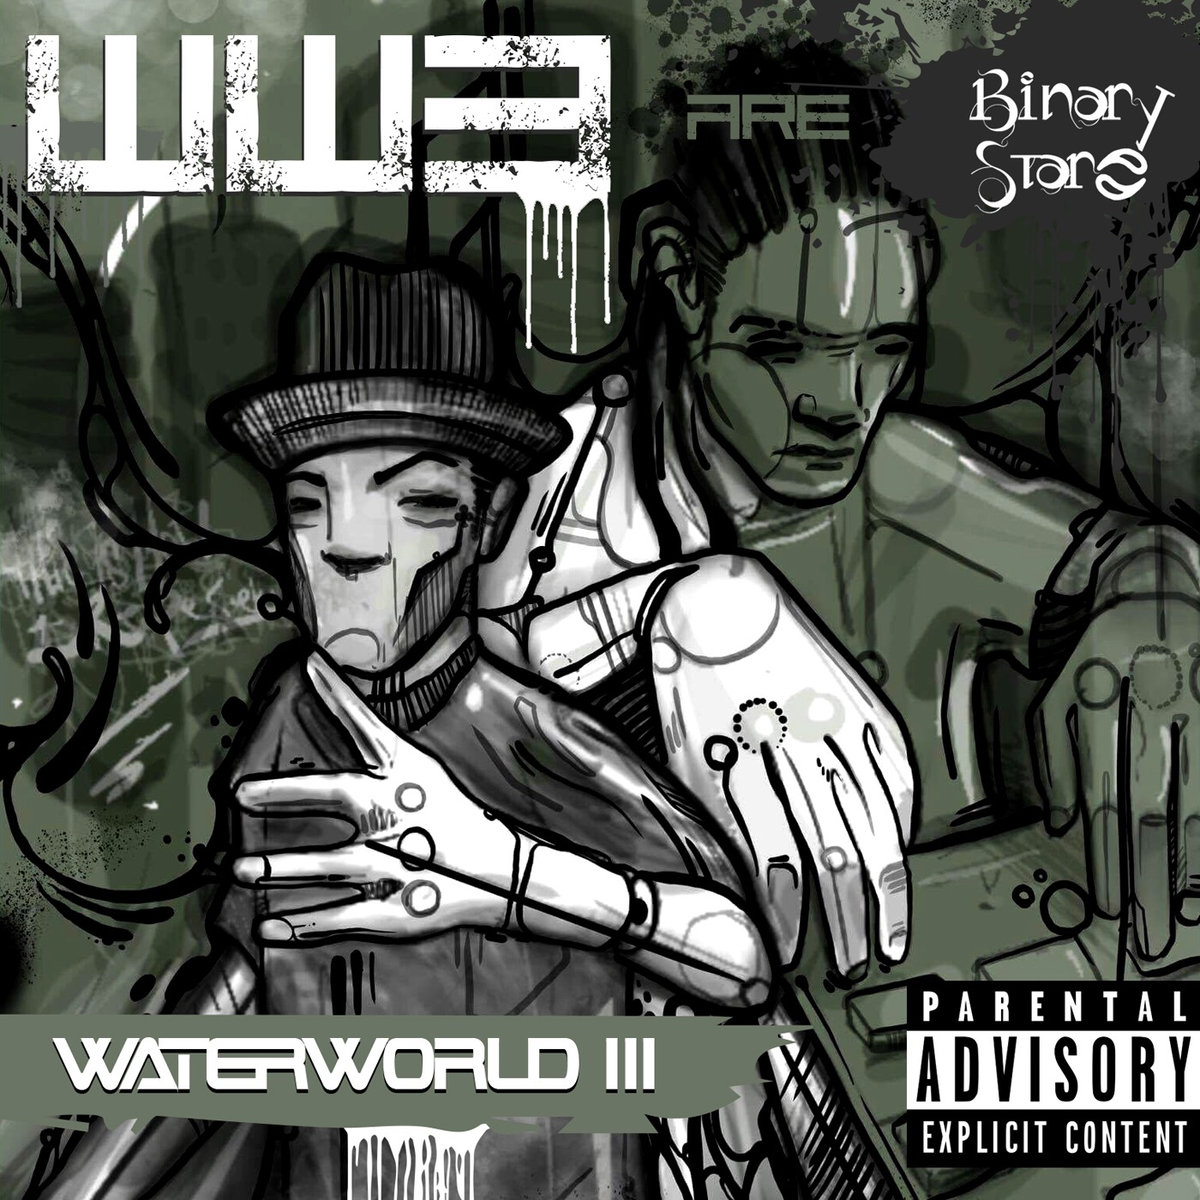 Binary Star returns with Water World 3